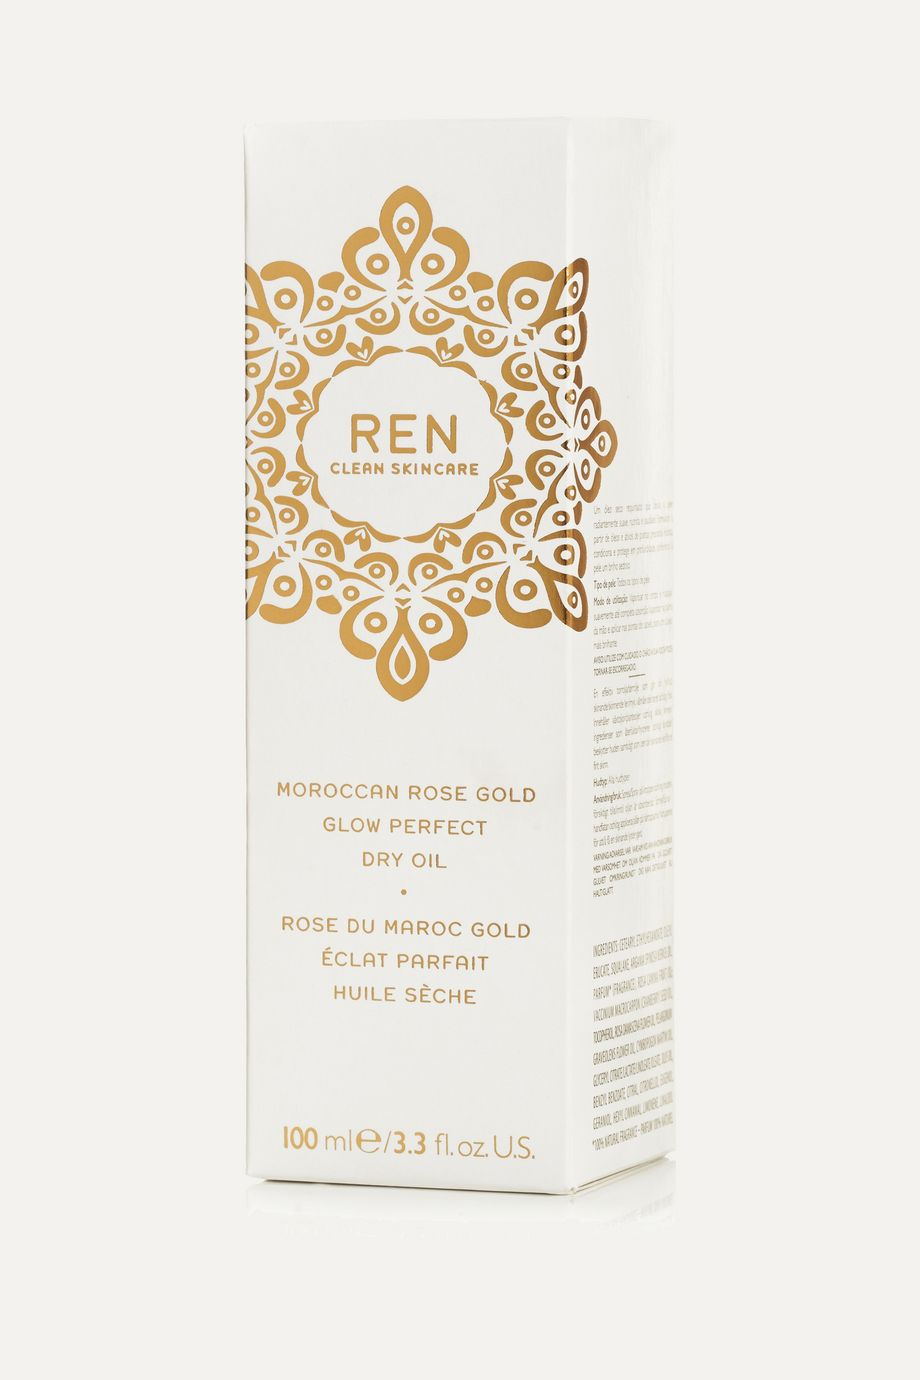 REN Clean Skincare Moroccan Rose Gold Glow Perfect Dry Oil, 100ml